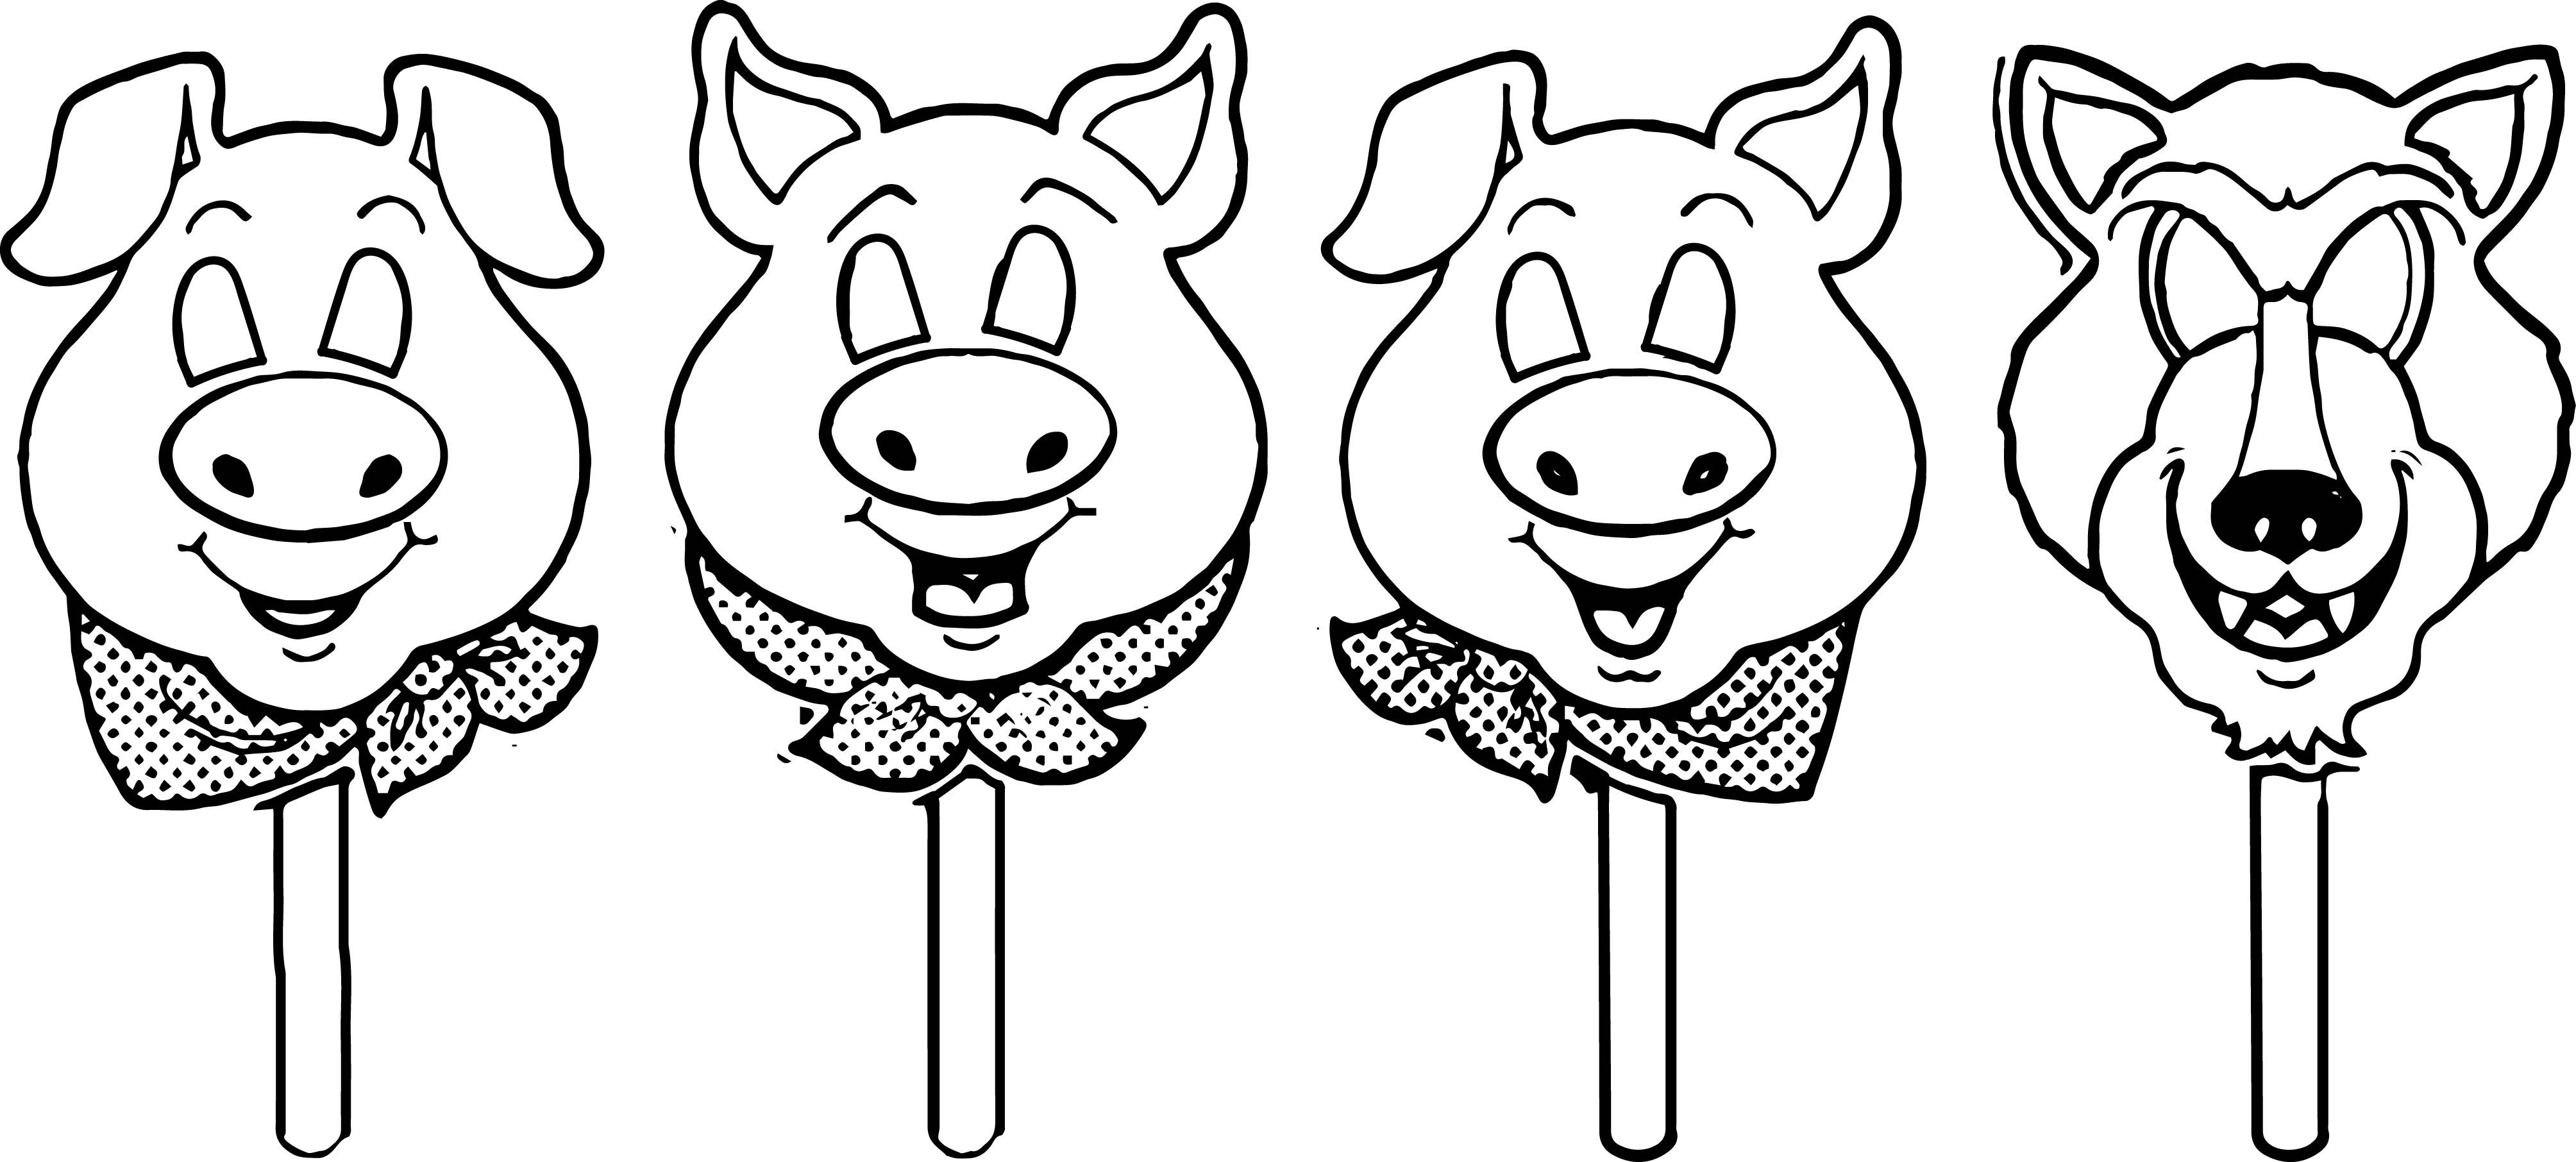 Awesome 3 Little Pigs Mask Template Coloring Page Little Pigs